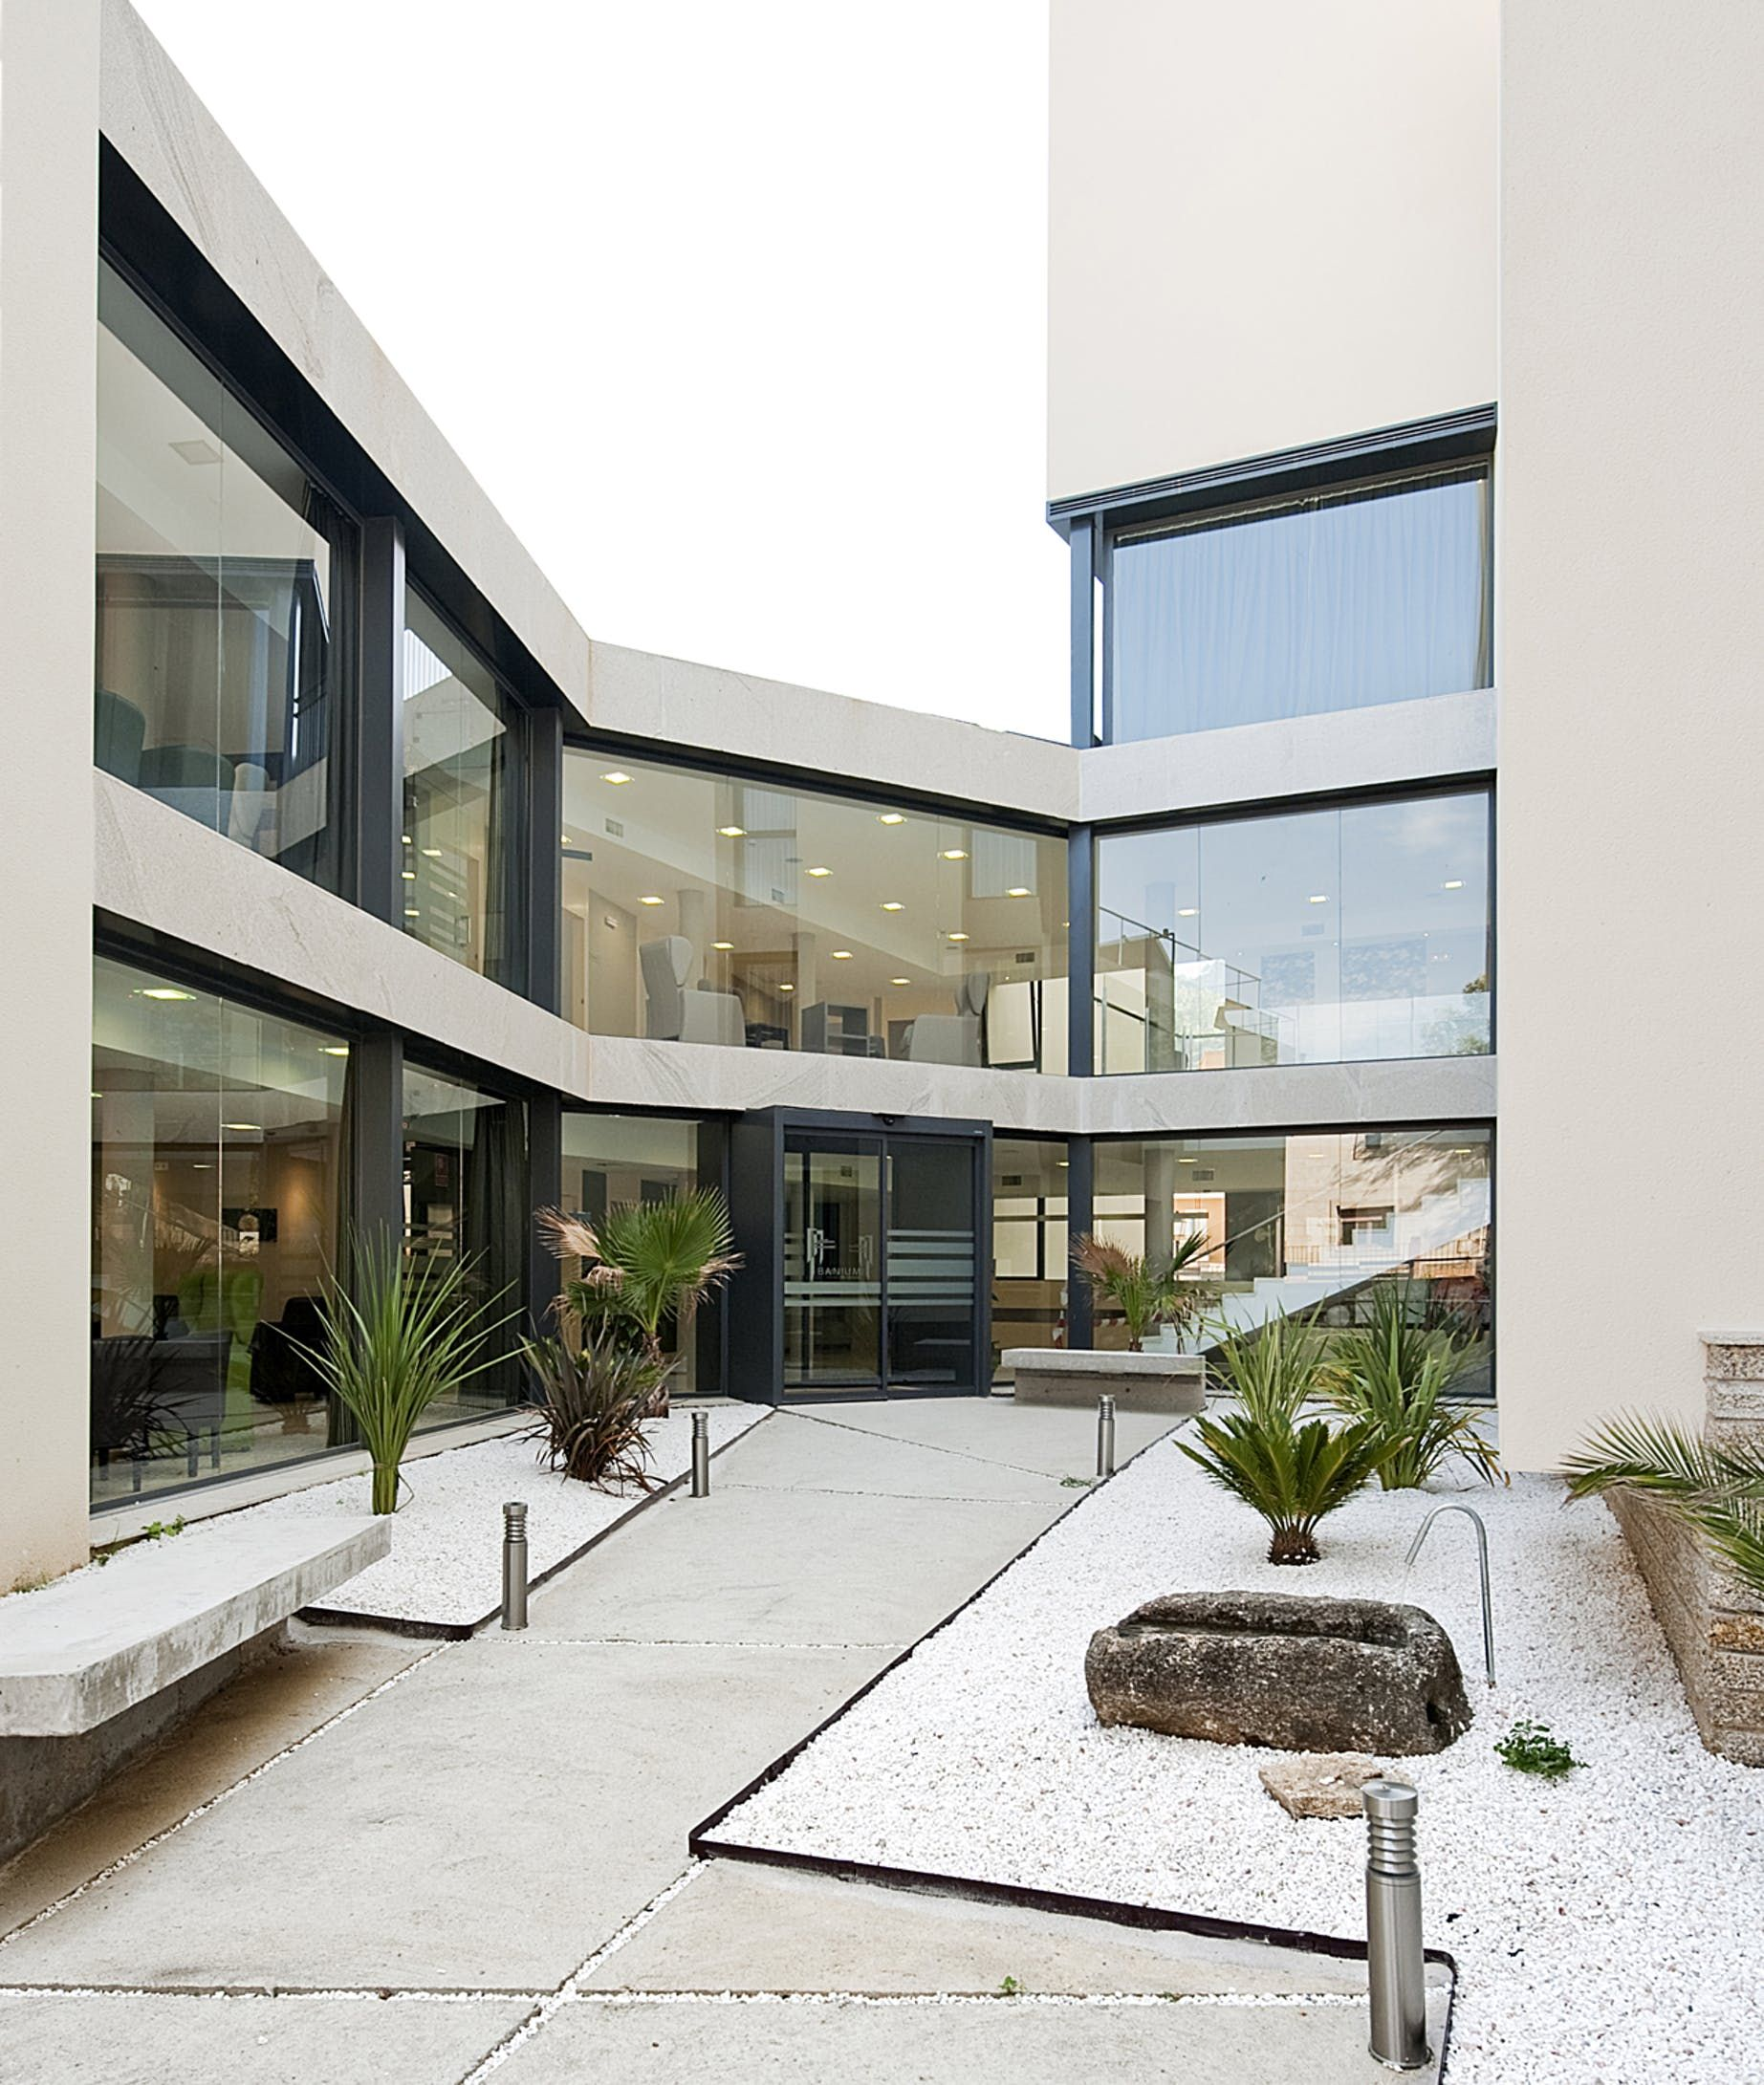 Nursing home gea architects archinect also elderly building design rh in pinterest